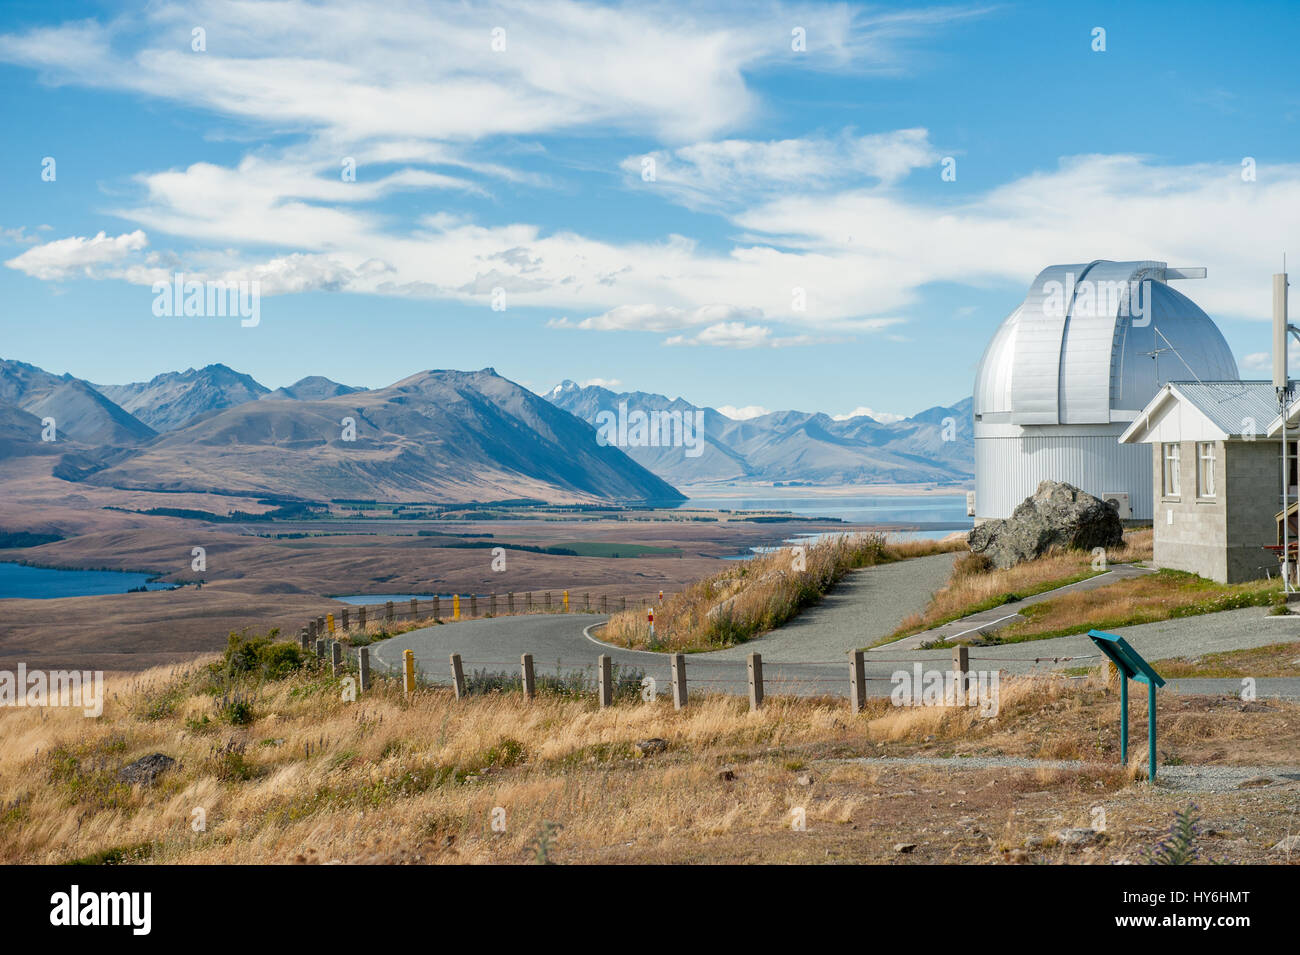 Mount John Observatory and Mackenzie country viewed from Mount John. This is New Zealands premier astronomical observatory. - Stock Image